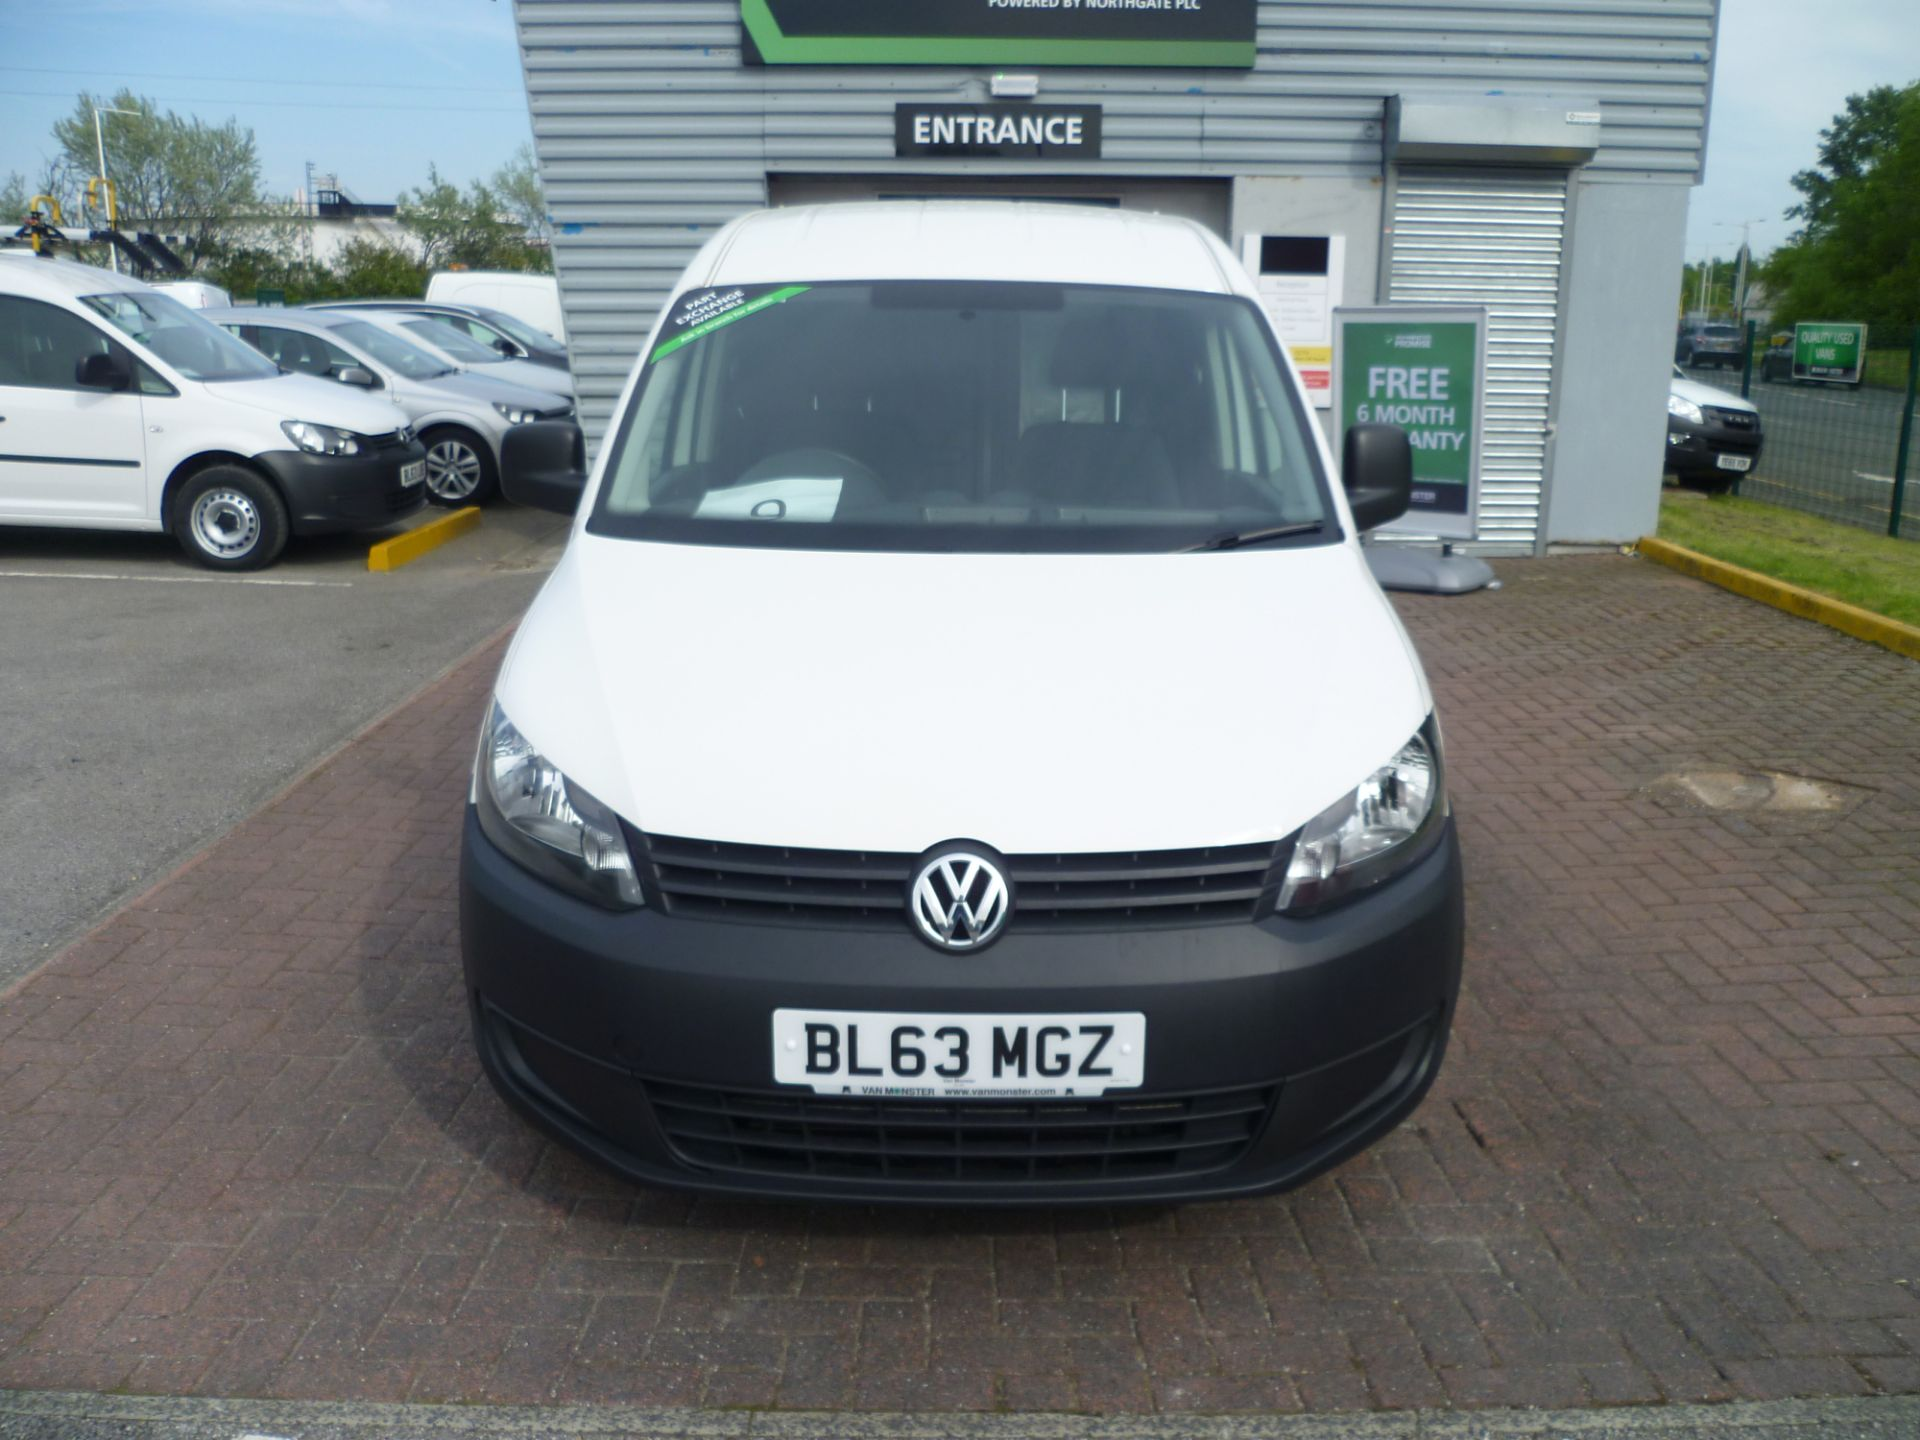 2014 Volkswagen Caddy 1.6 BLUEMOTION 102PS STARTLINE EURO 5 (BL63MGZ) Thumbnail 3